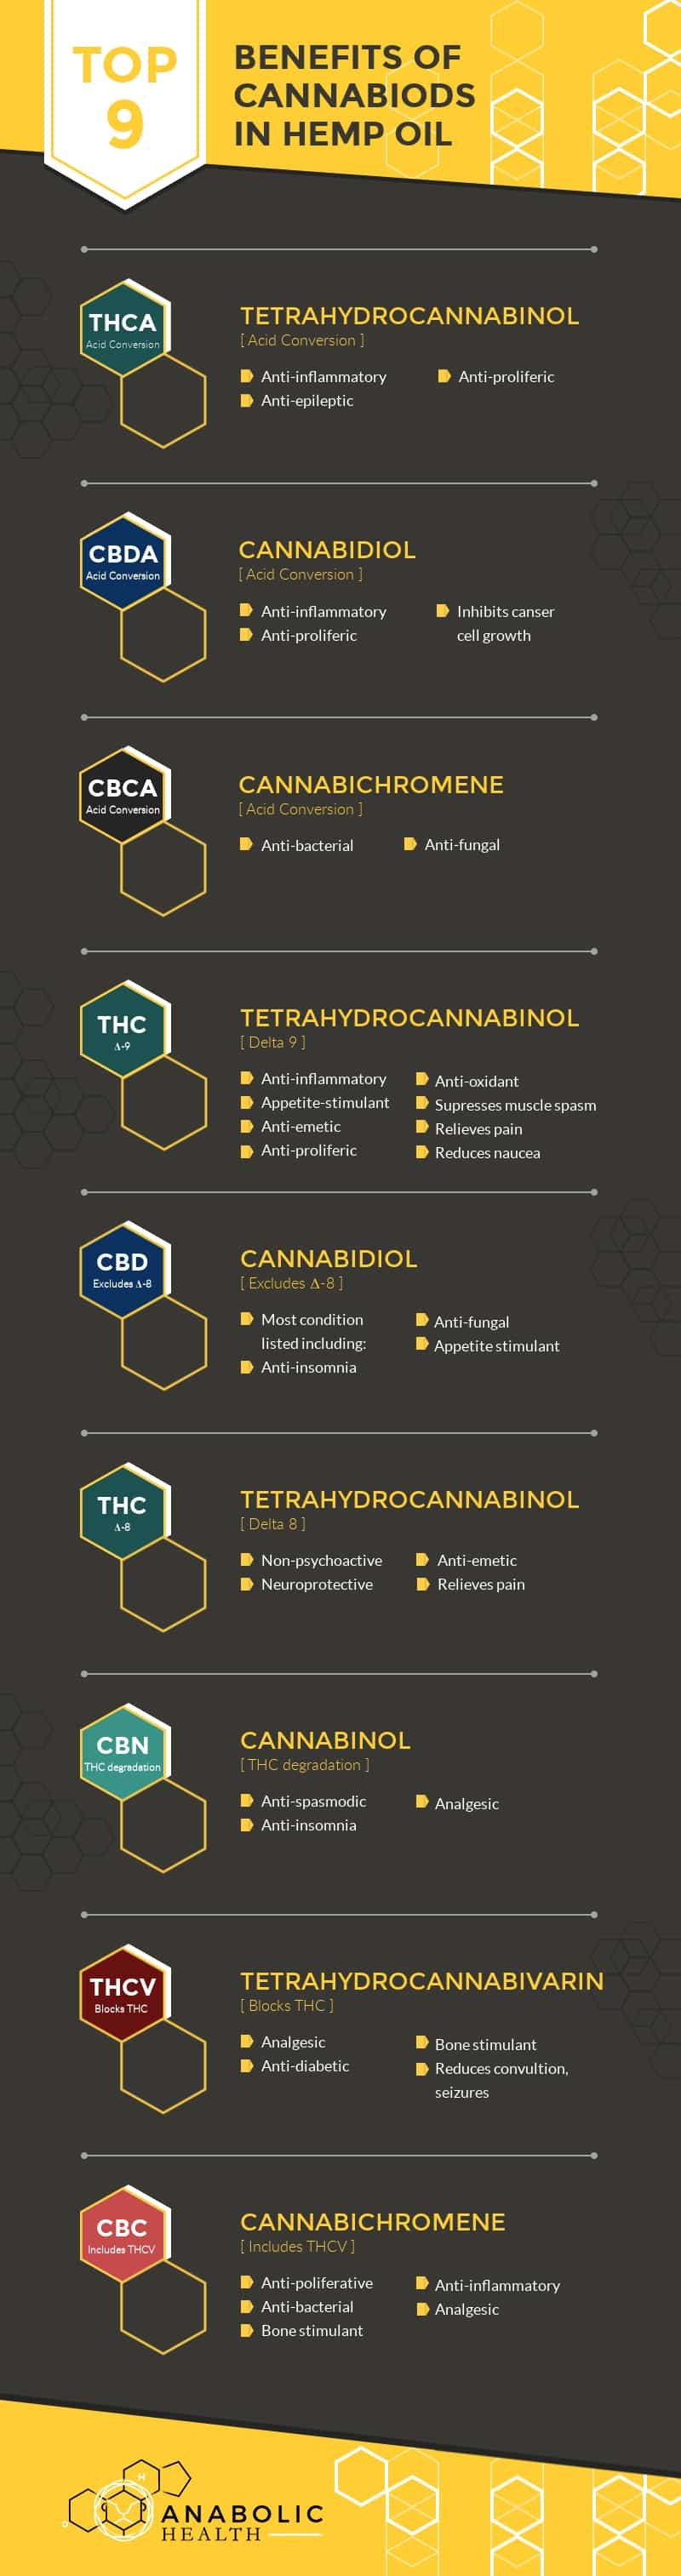 Benefits-of-Cannabinoids-in-Hemp-Oil-